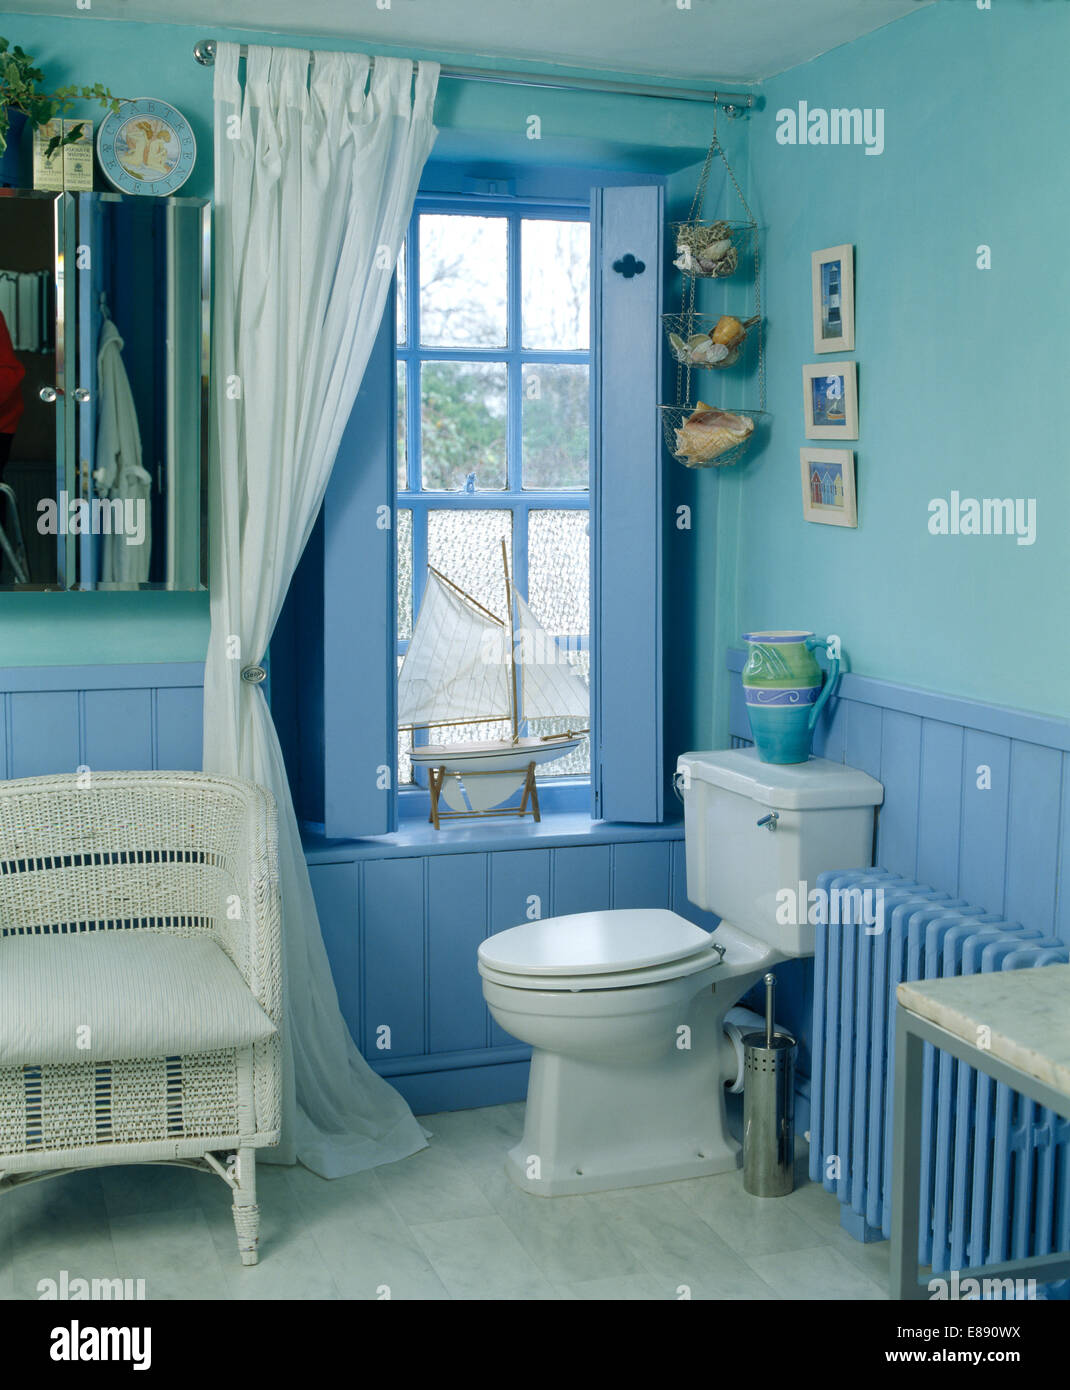 Bathroom With Tongue And Groove Stock Photos & Bathroom With Tongue ...